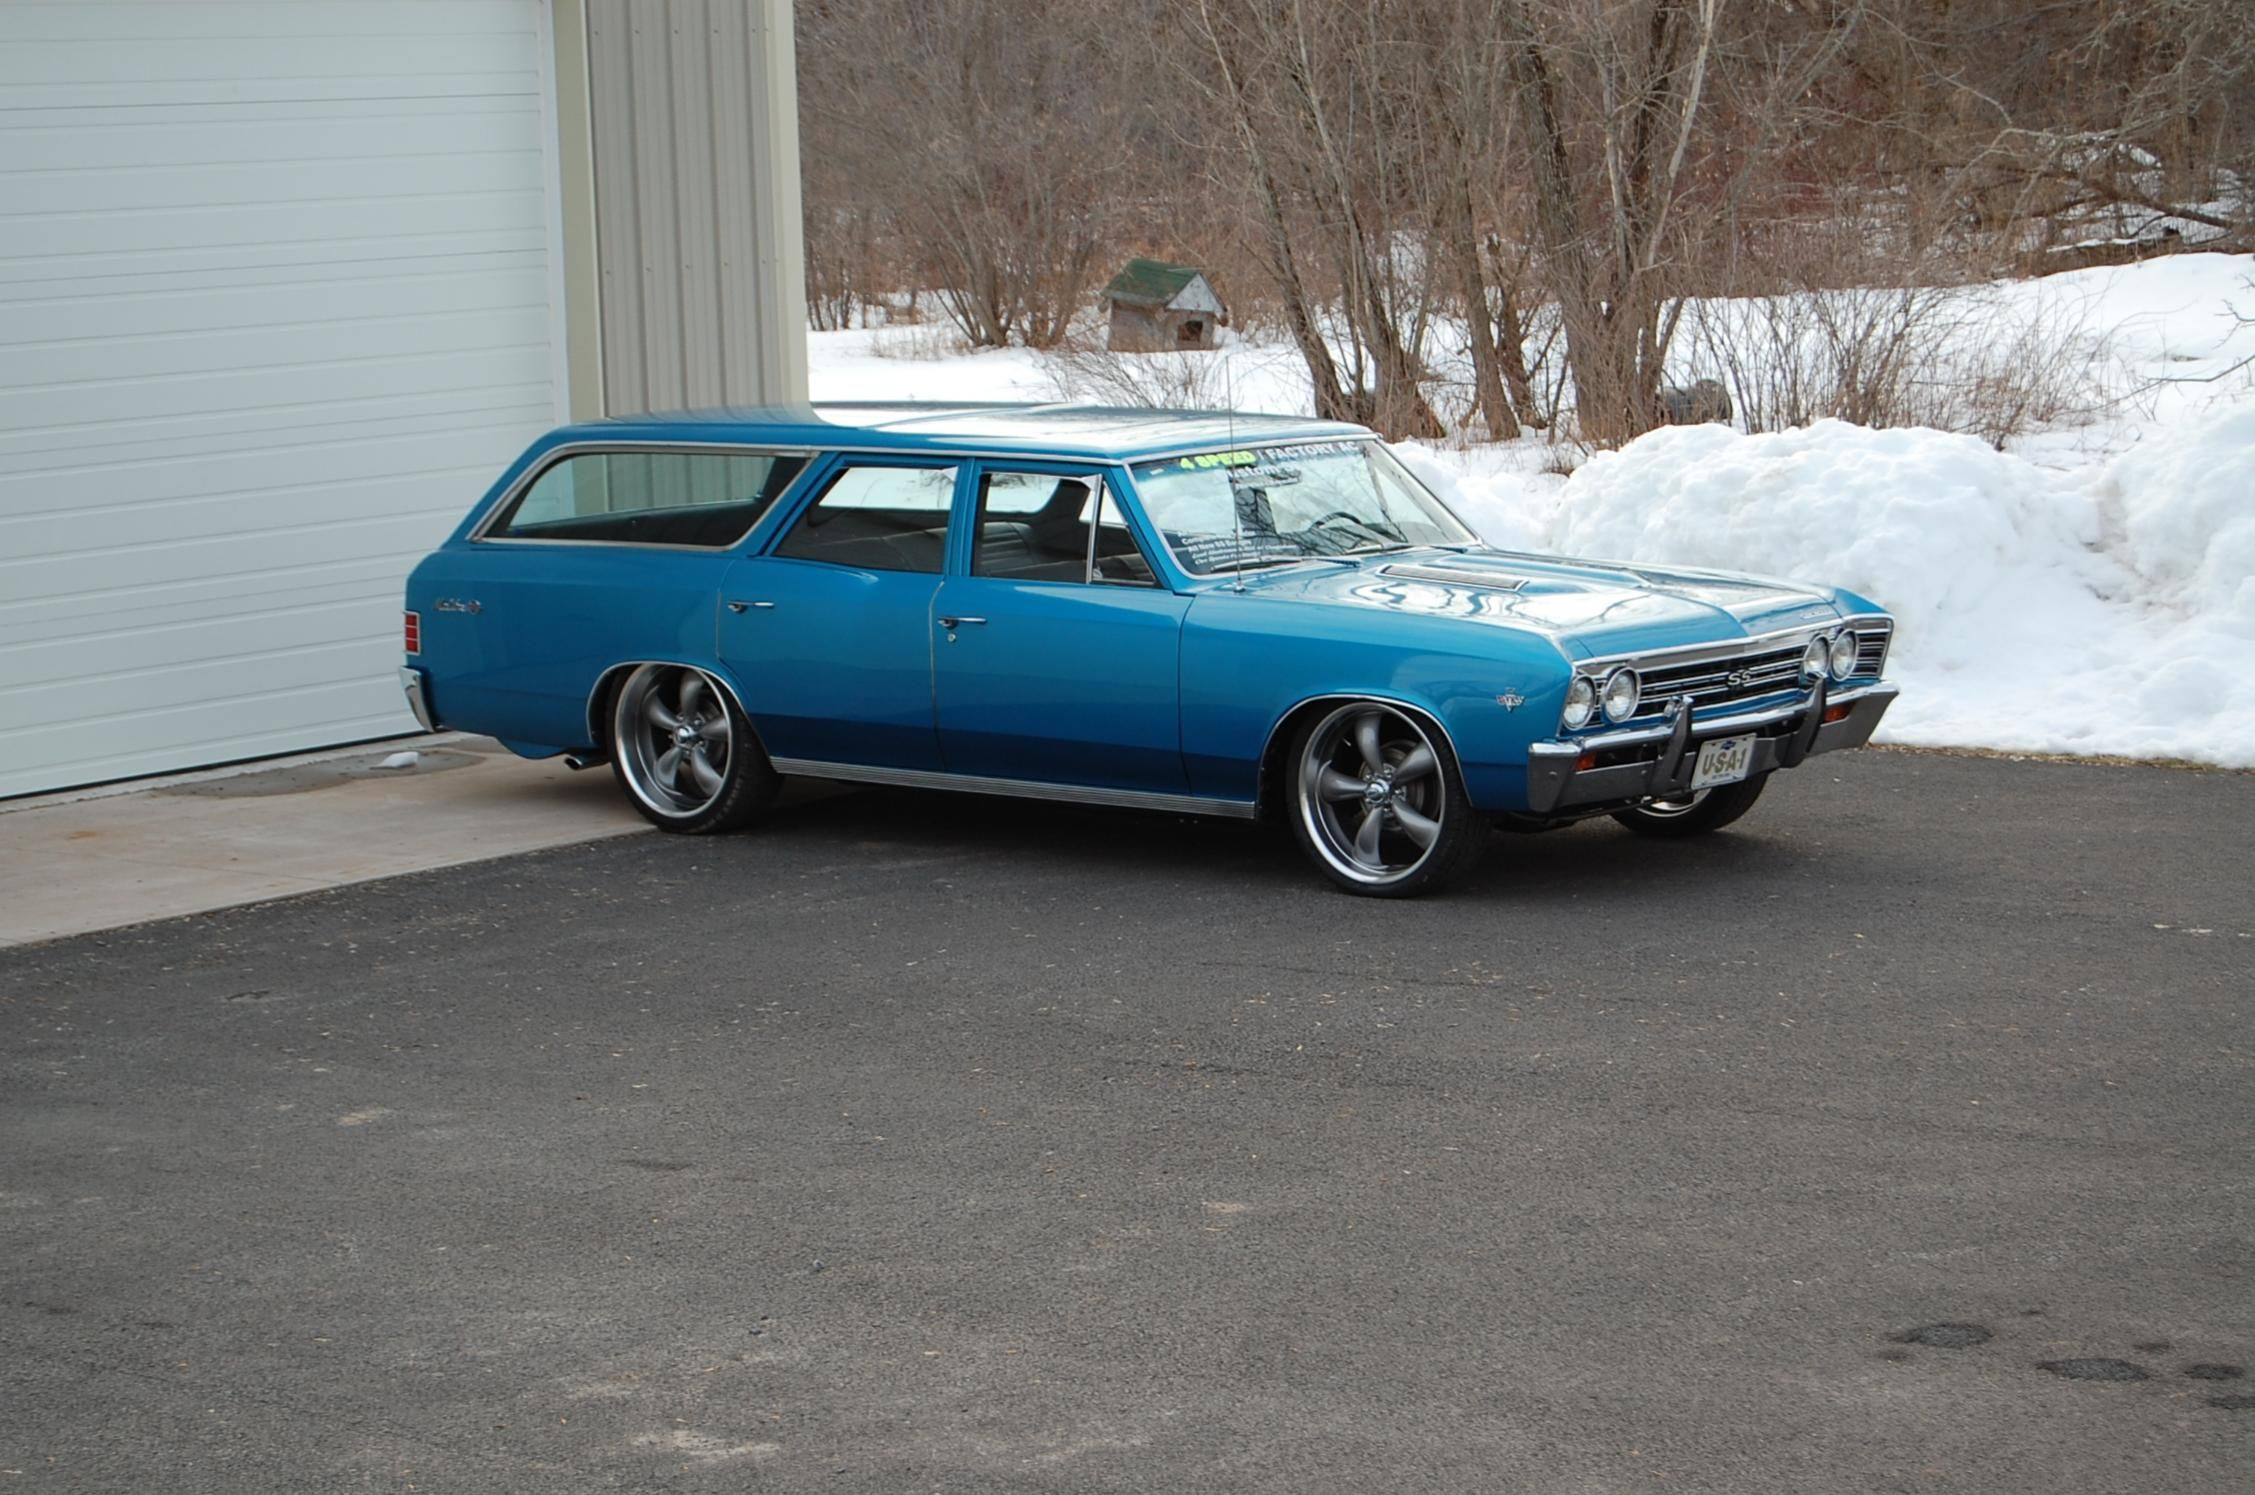 chevelle, station wagon | The Best Of Automotive: 1967 Chevelle ...